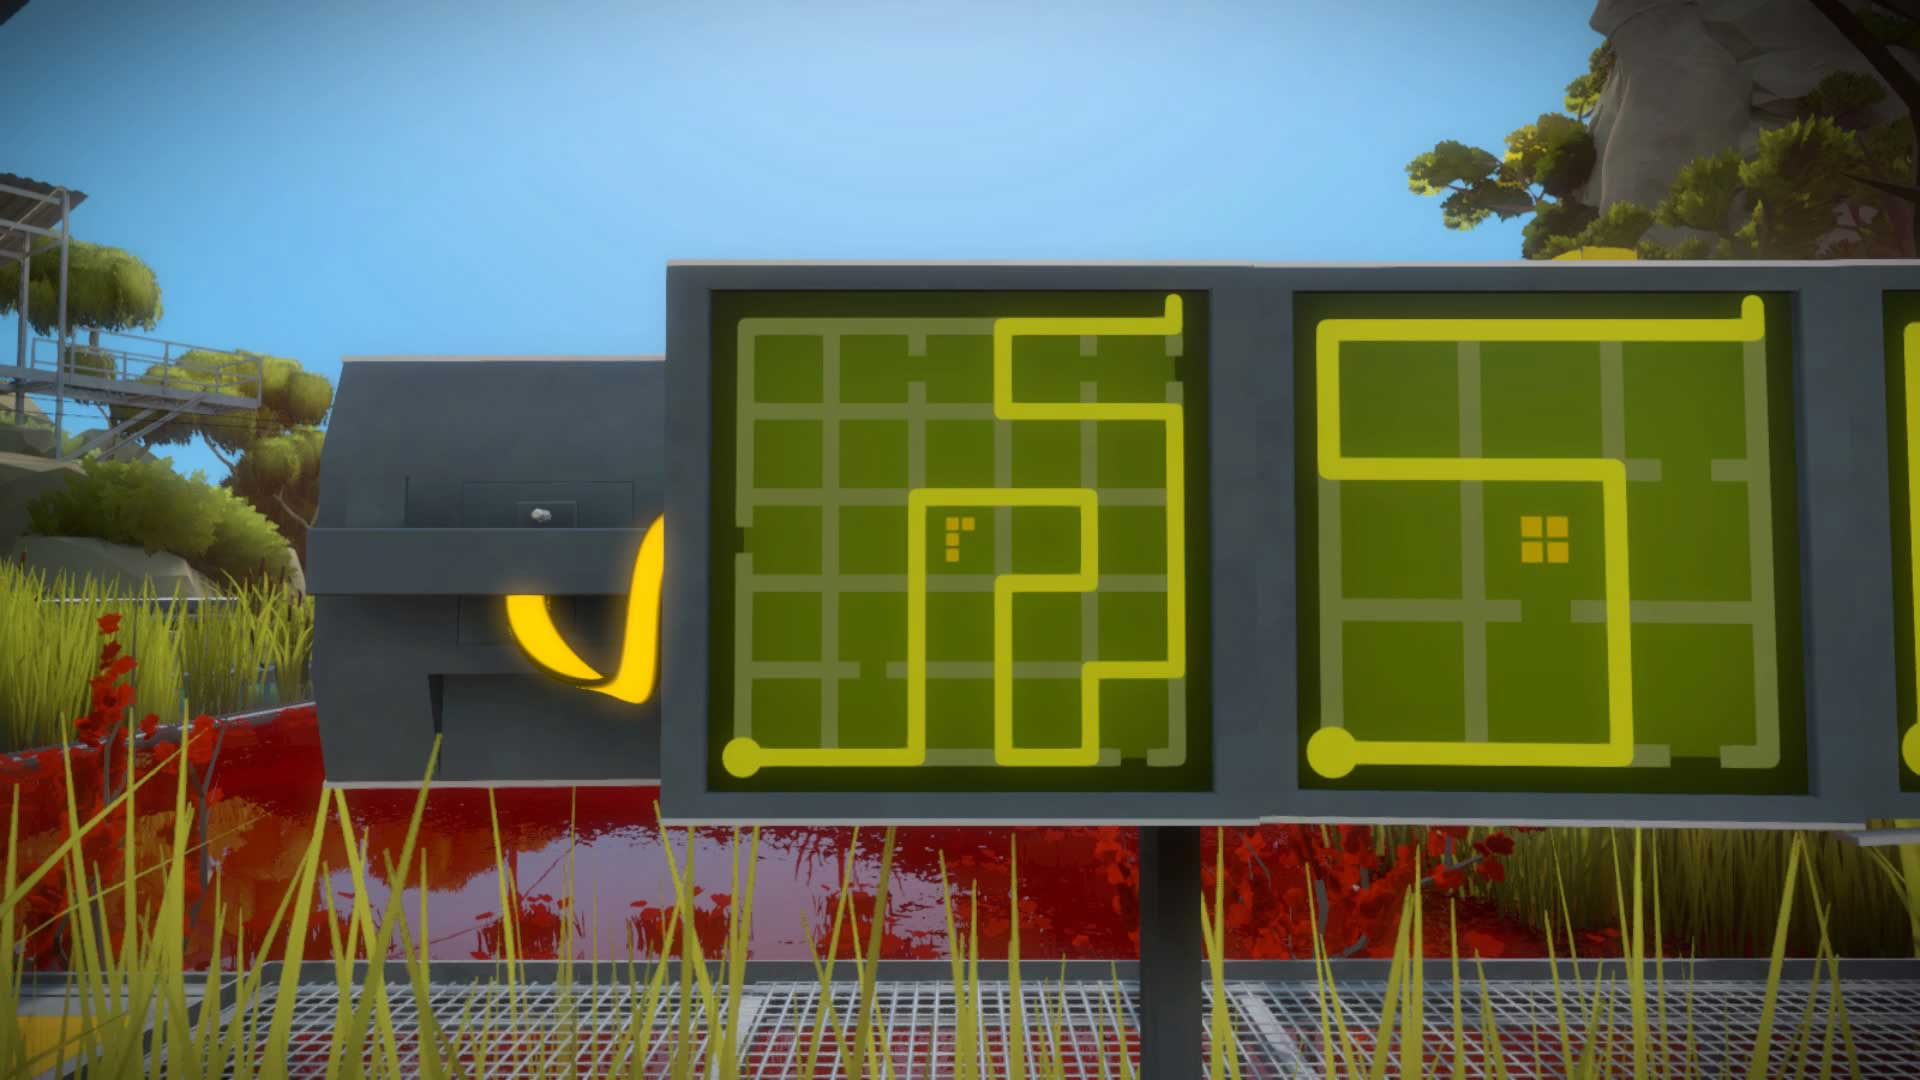 The Witness how to solve the tetromino puzzles in the